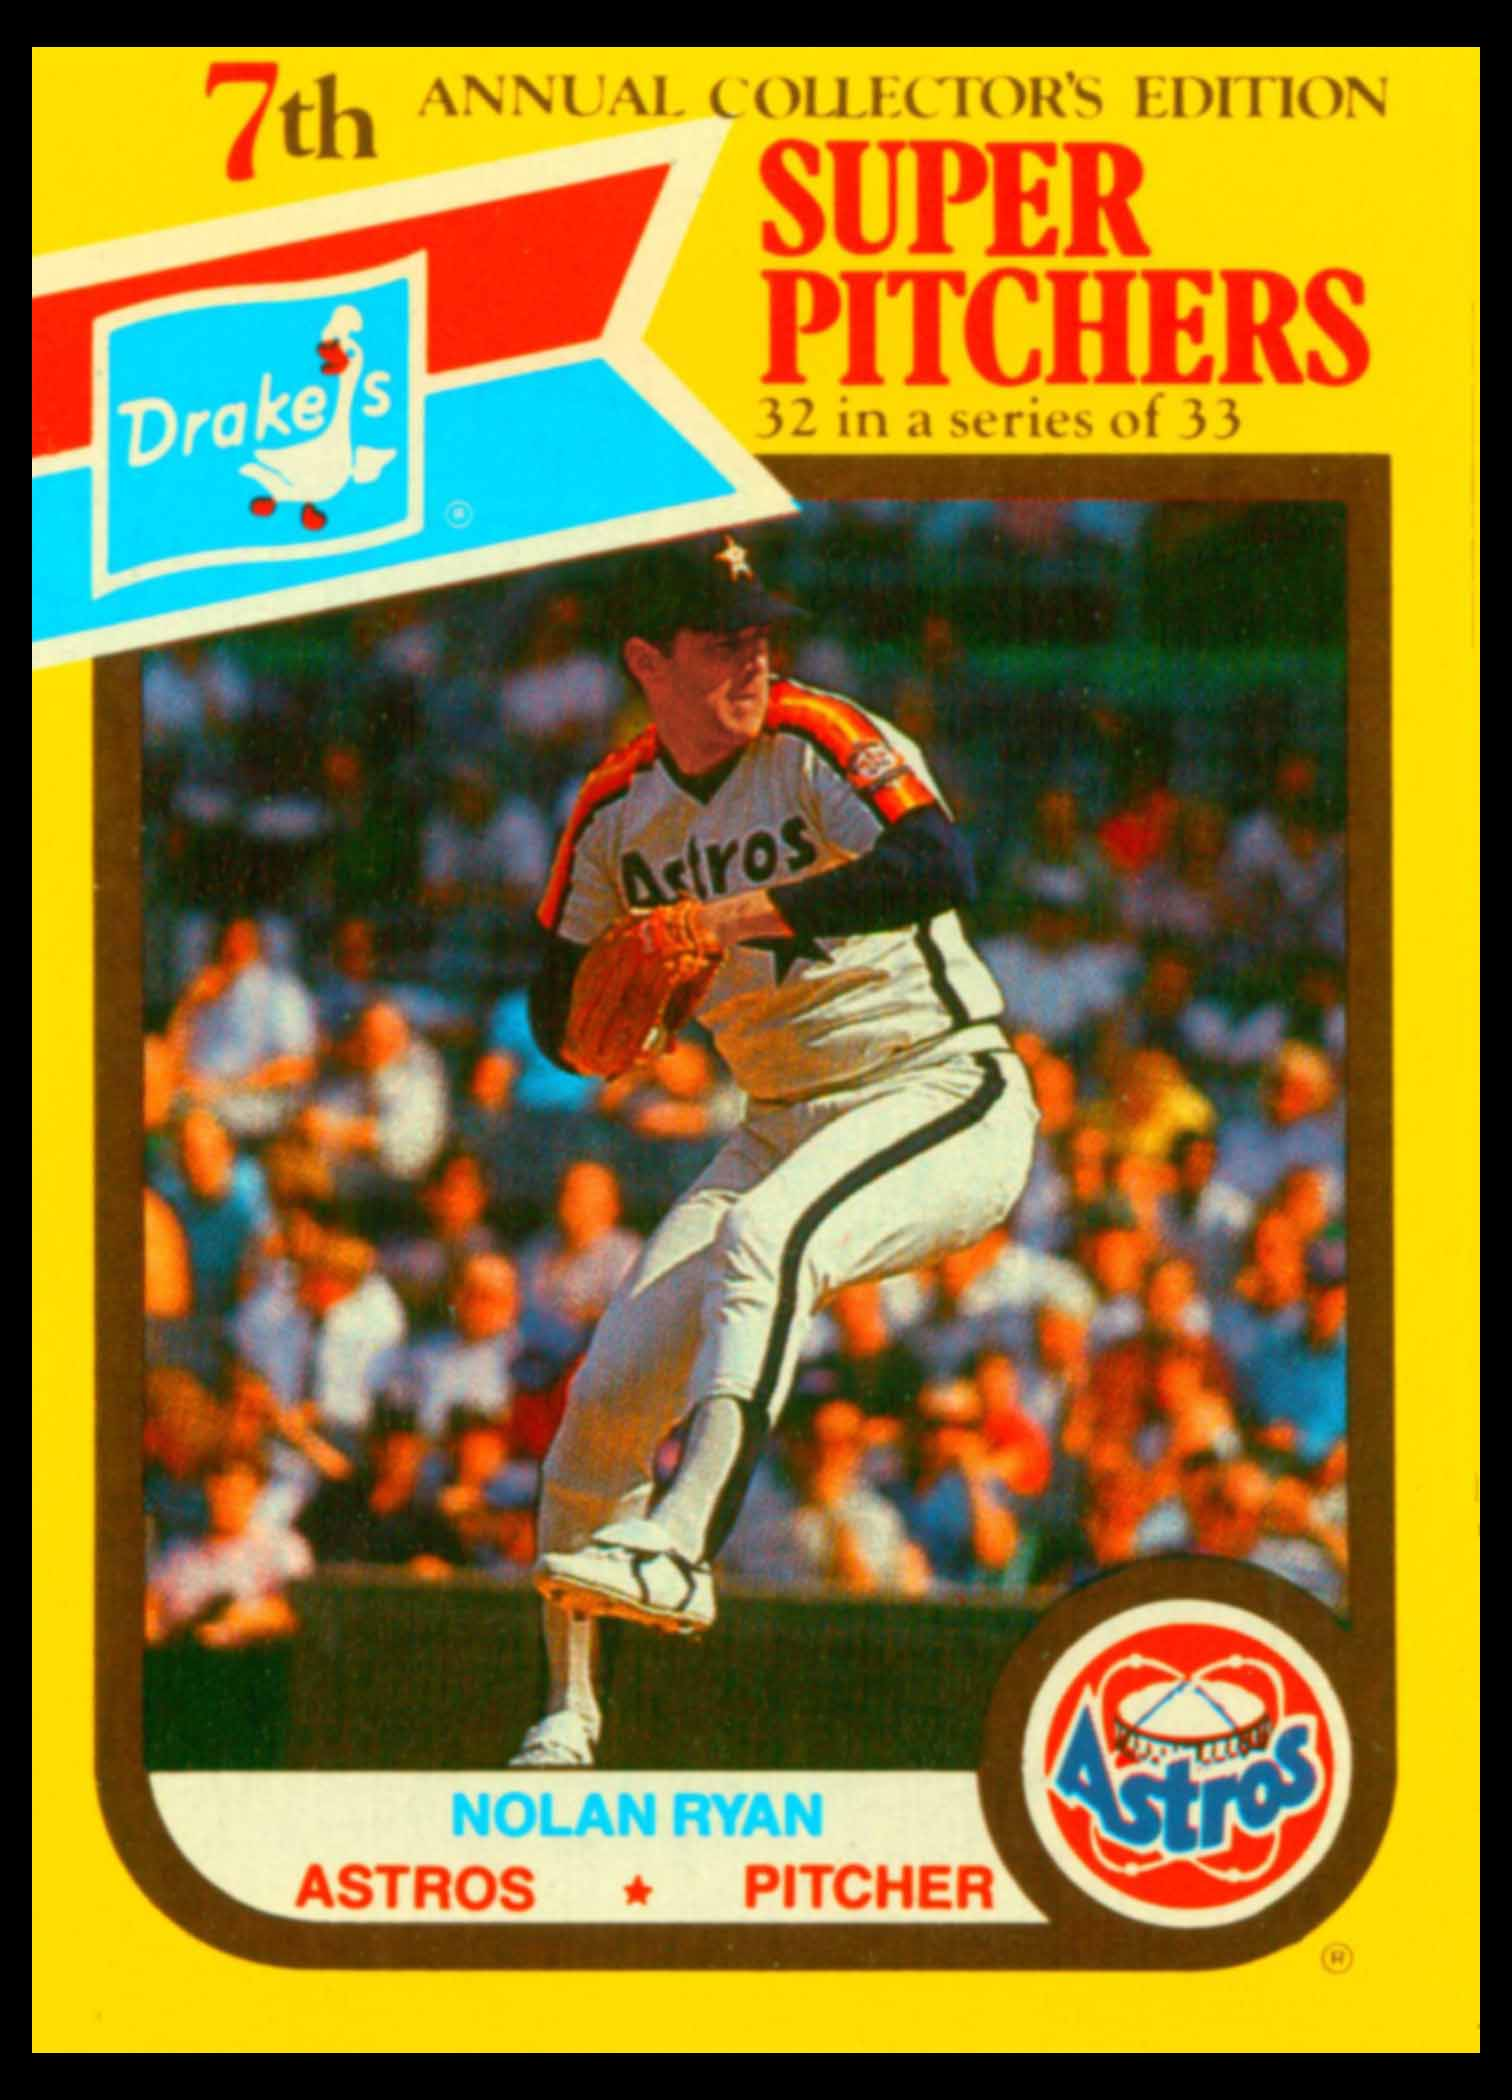 1987 Drake's Super Pitchers